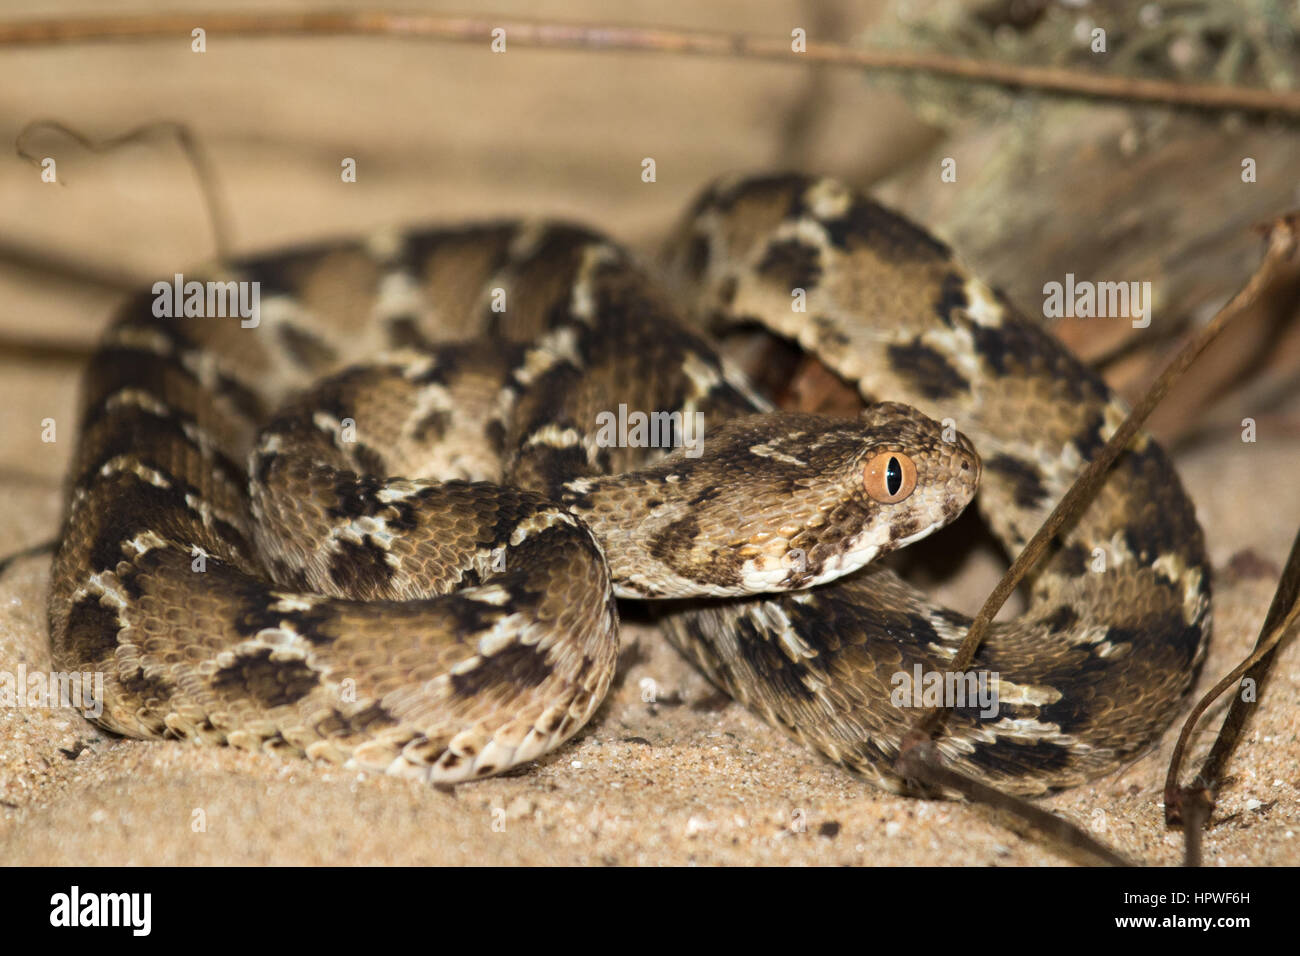 Vio indio-scaled Viper (Echis carinatus) Imagen De Stock